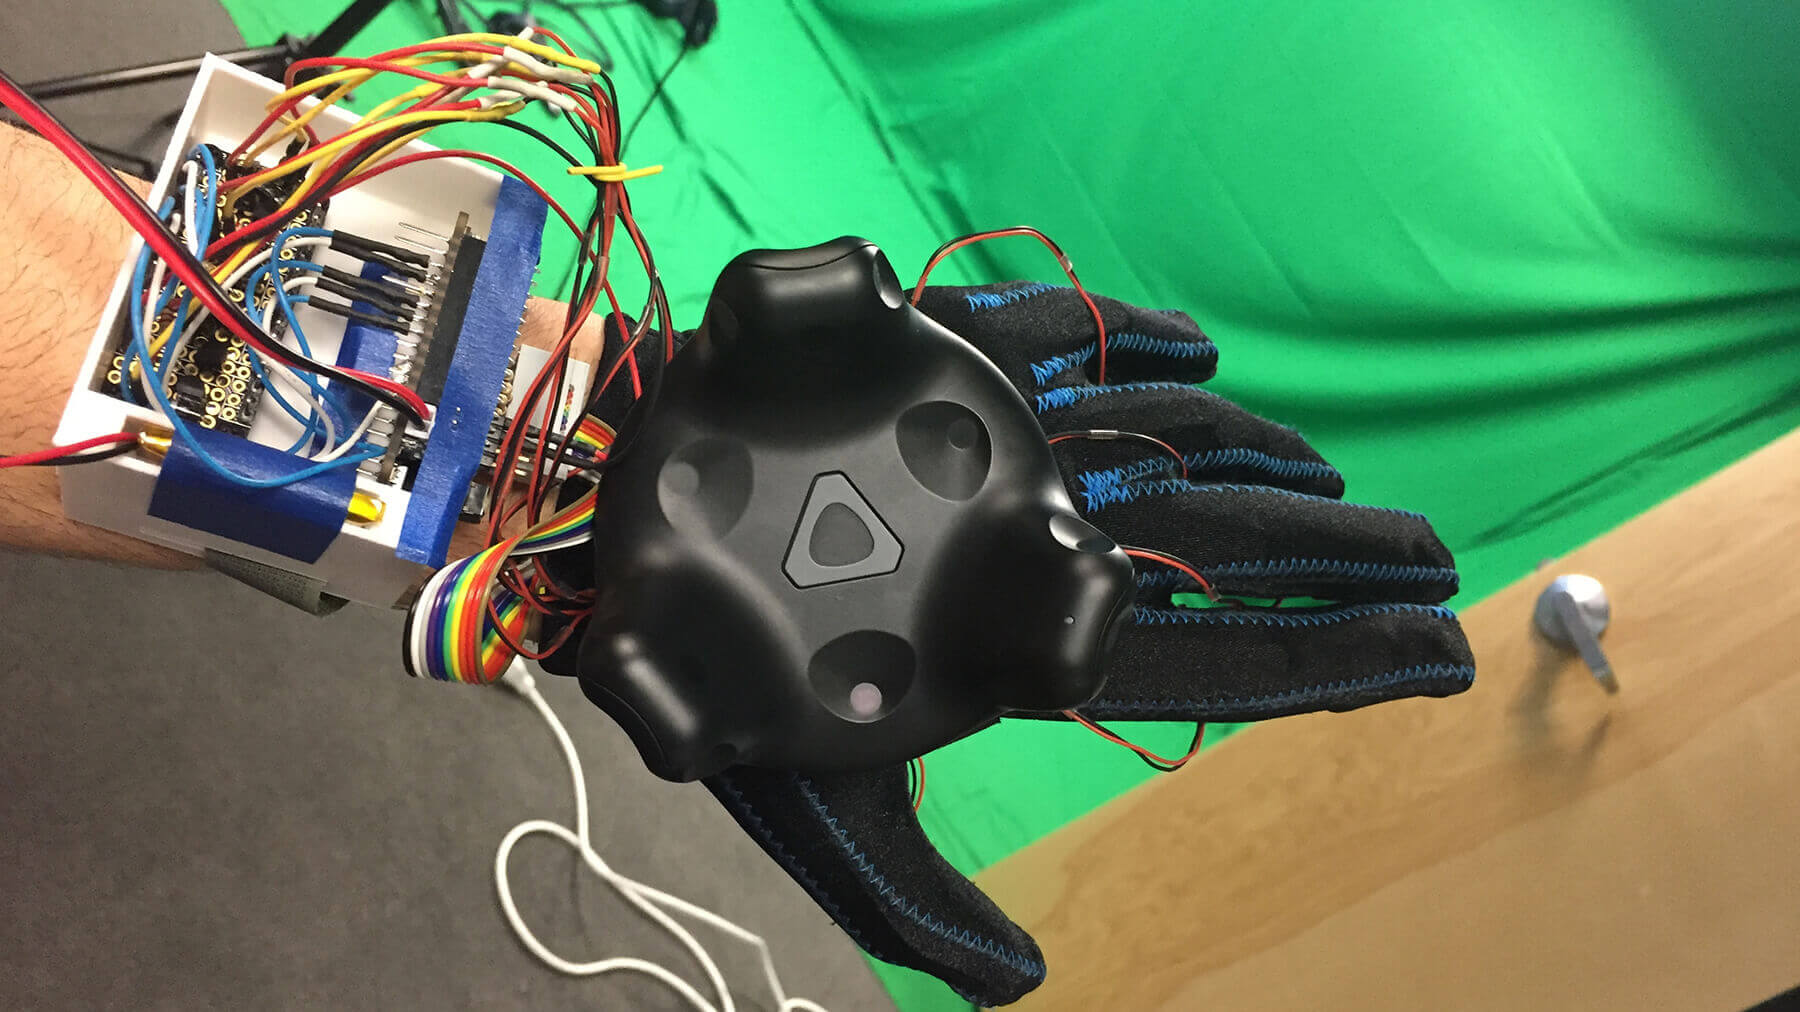 Virtual reality exposed haptic glove